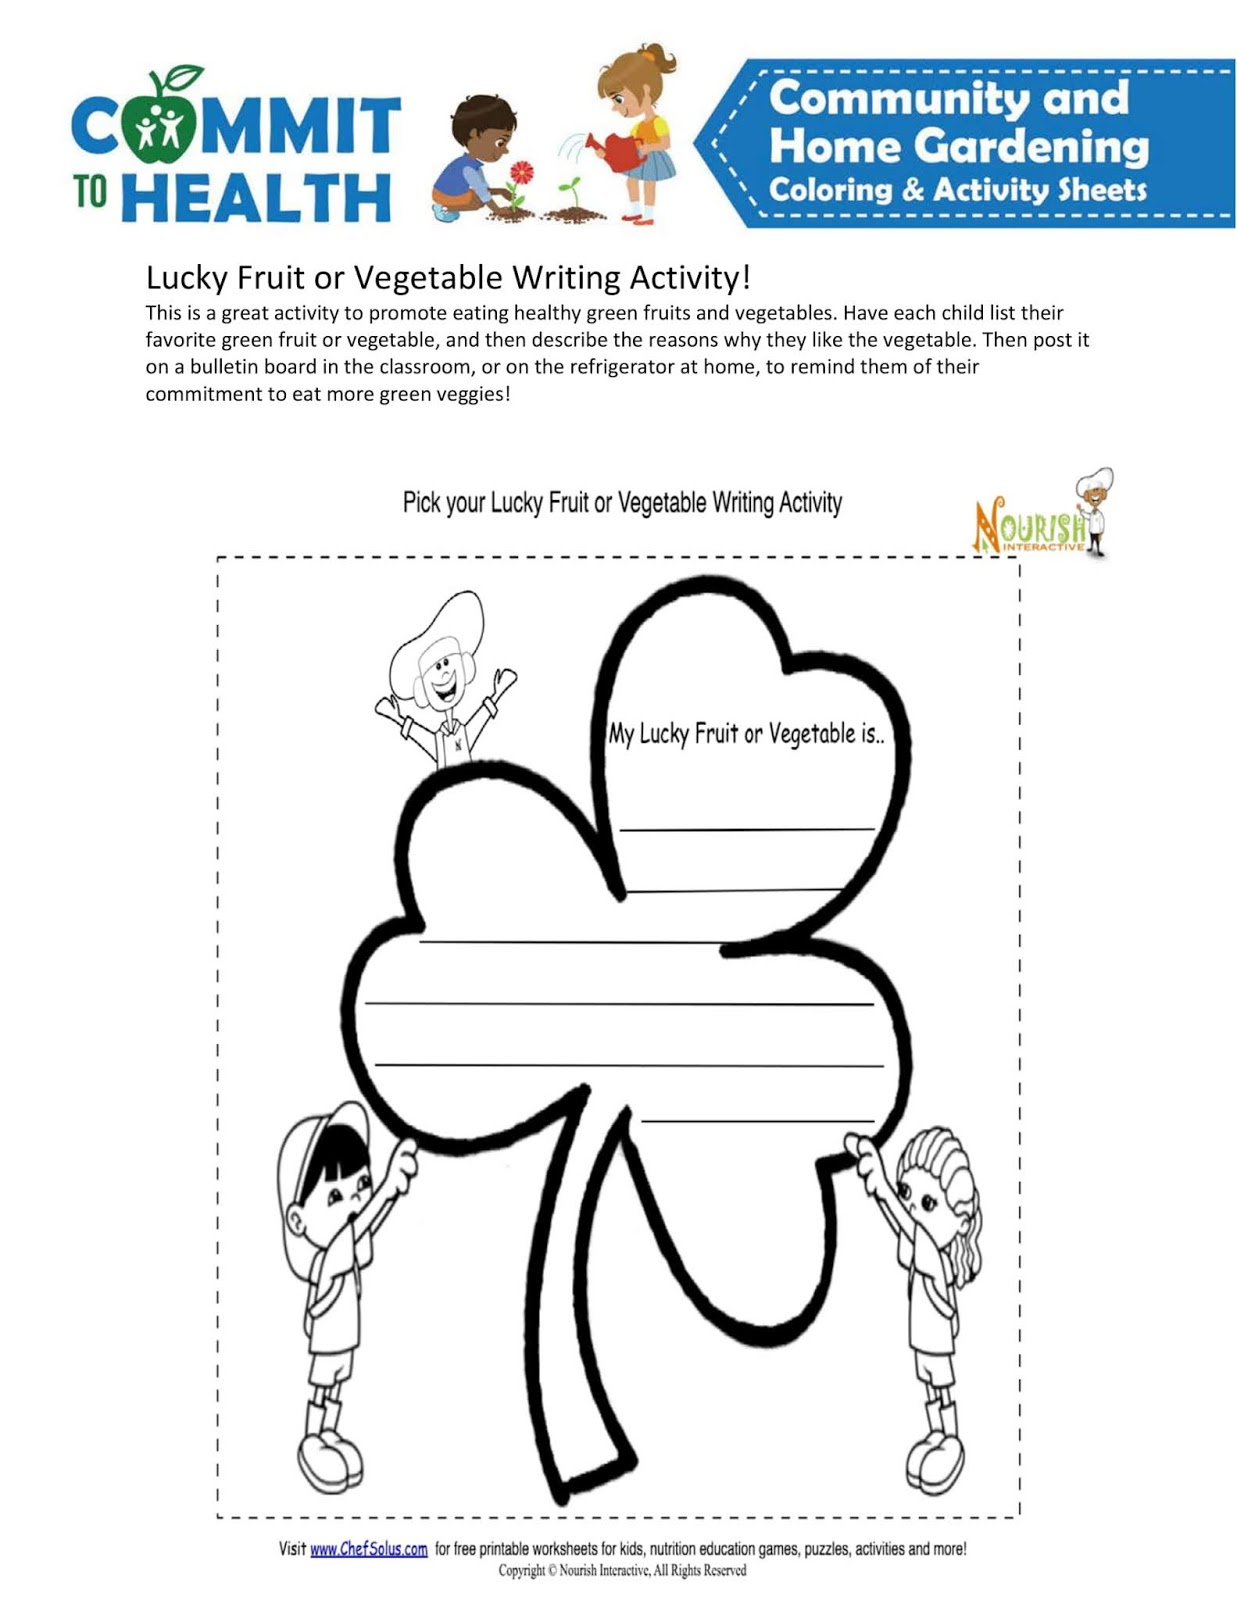 March coloring activity sheets gardening community home grades 3-5 -  Raste-enblog2 [ 1600 x 1237 Pixel ]